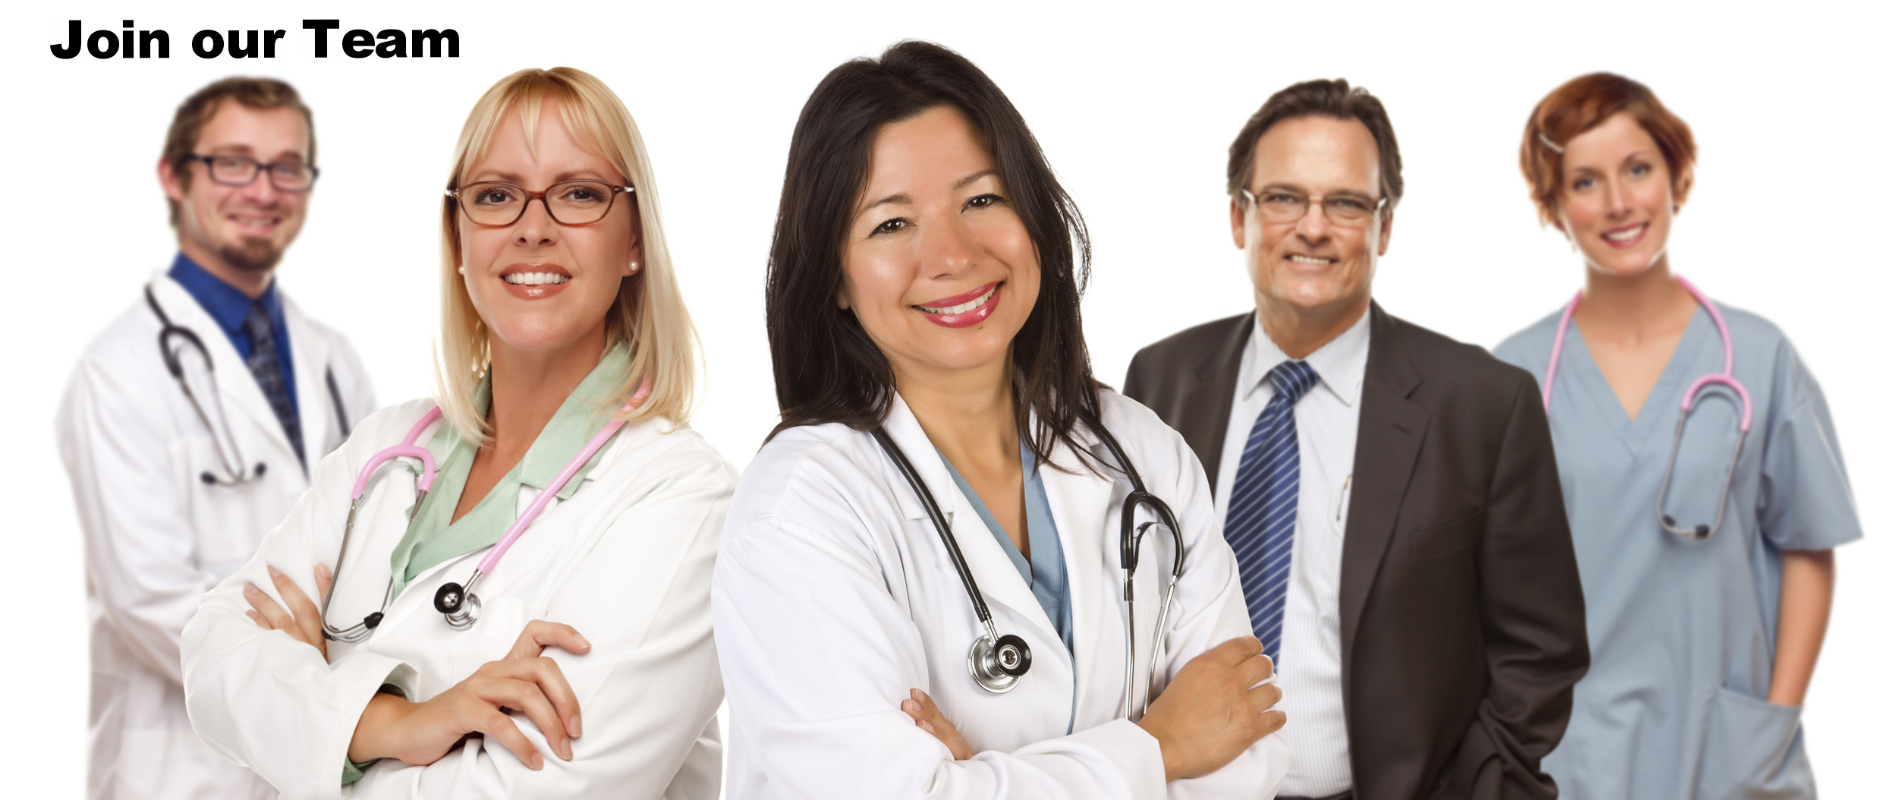 Group-Doctors-and-Nurses